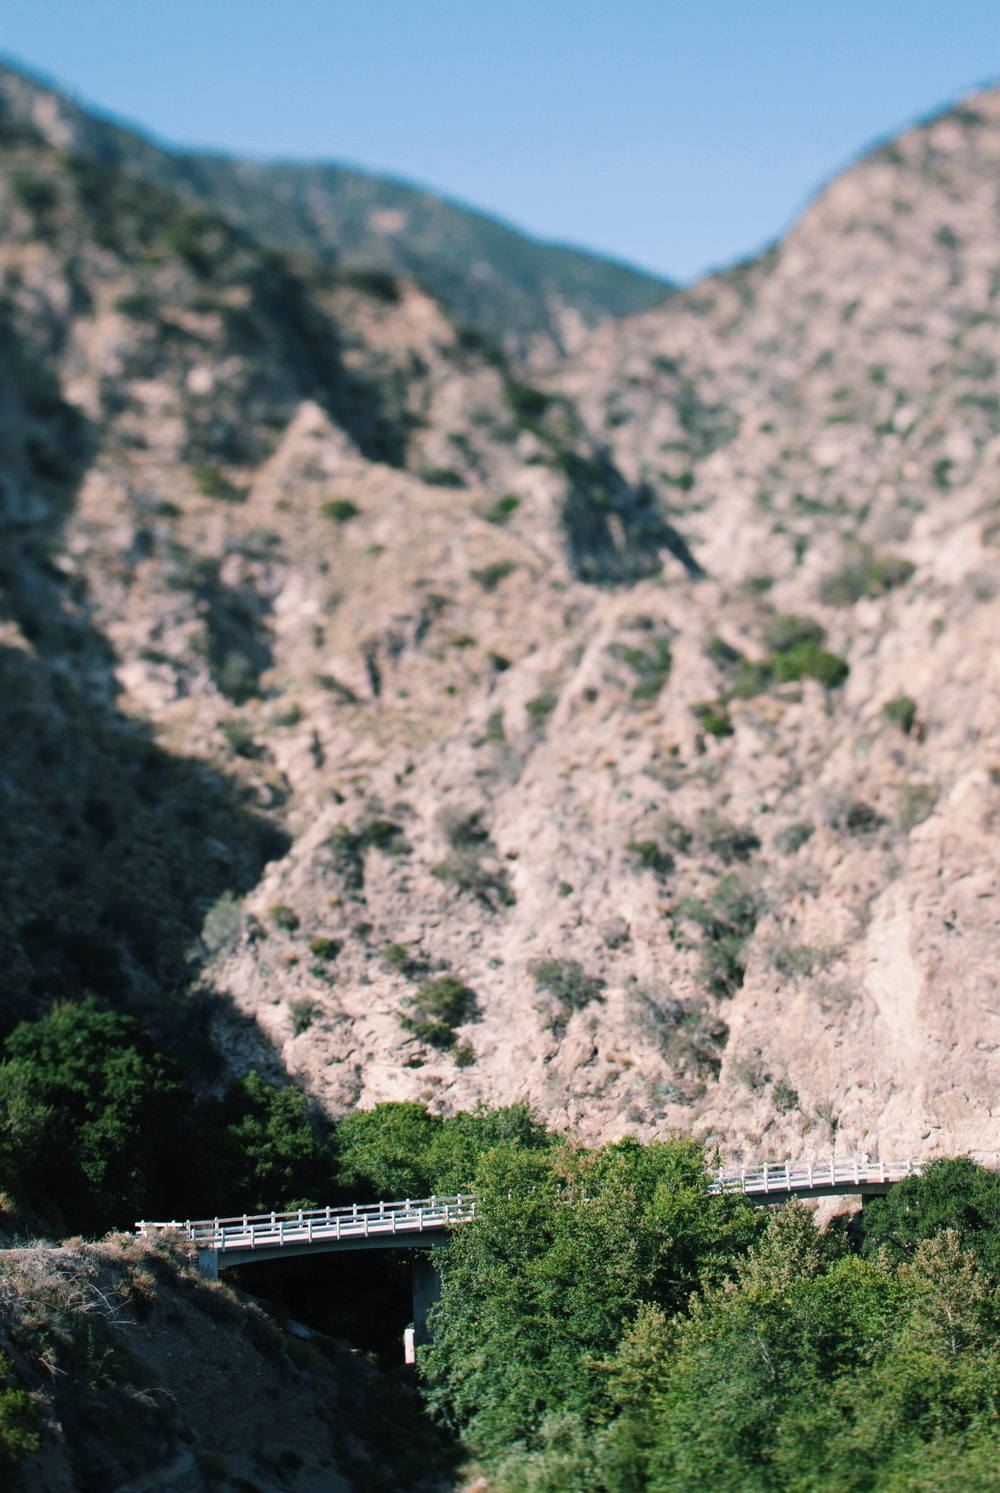 VIEW OF THE BRIDGE AT EATON CANYON (PHOTO BY JOSHUA CAINE